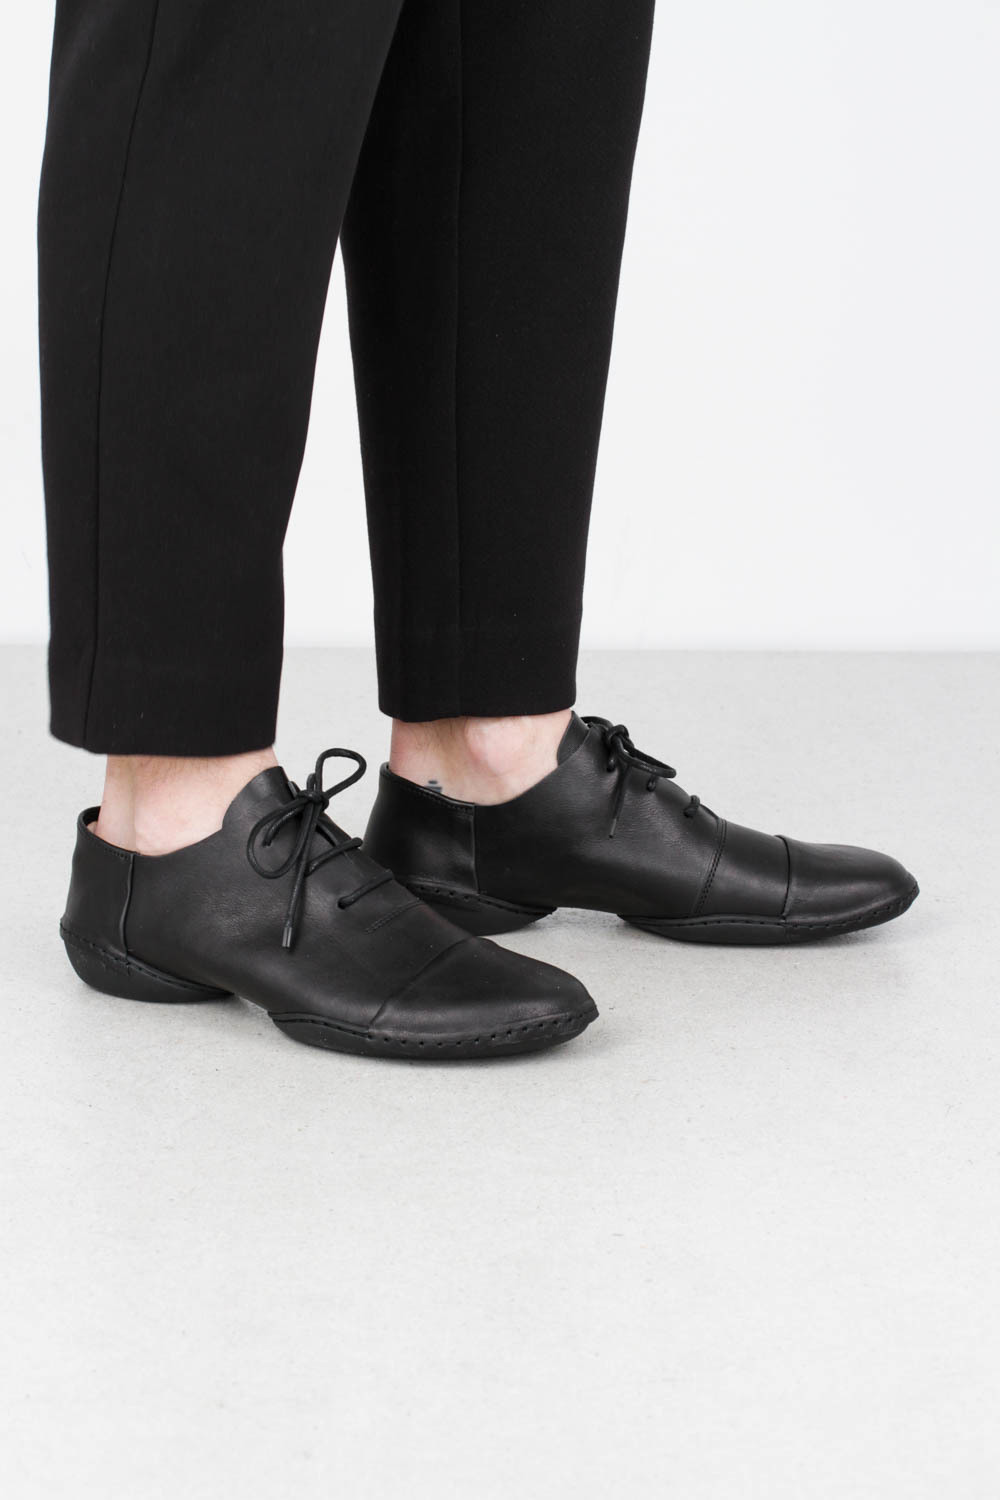 Trippen cello black waw s blk leathershoe2